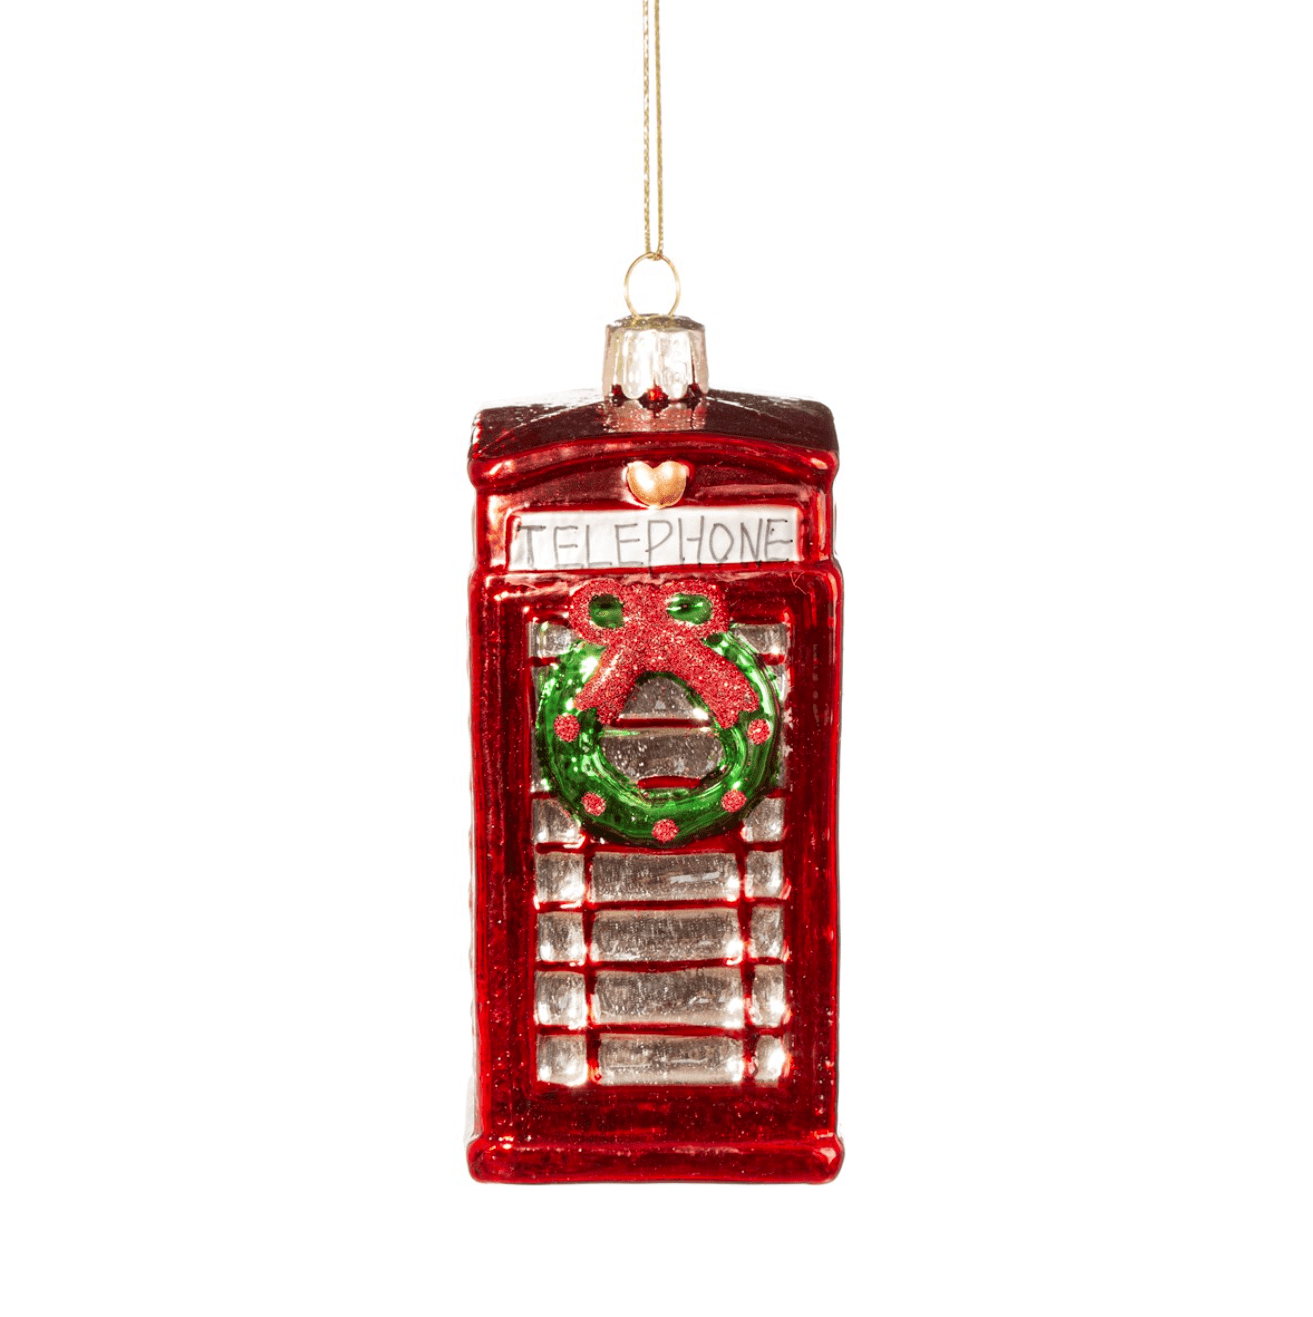 Red Telephone Box With Wreath By Sass & Belle